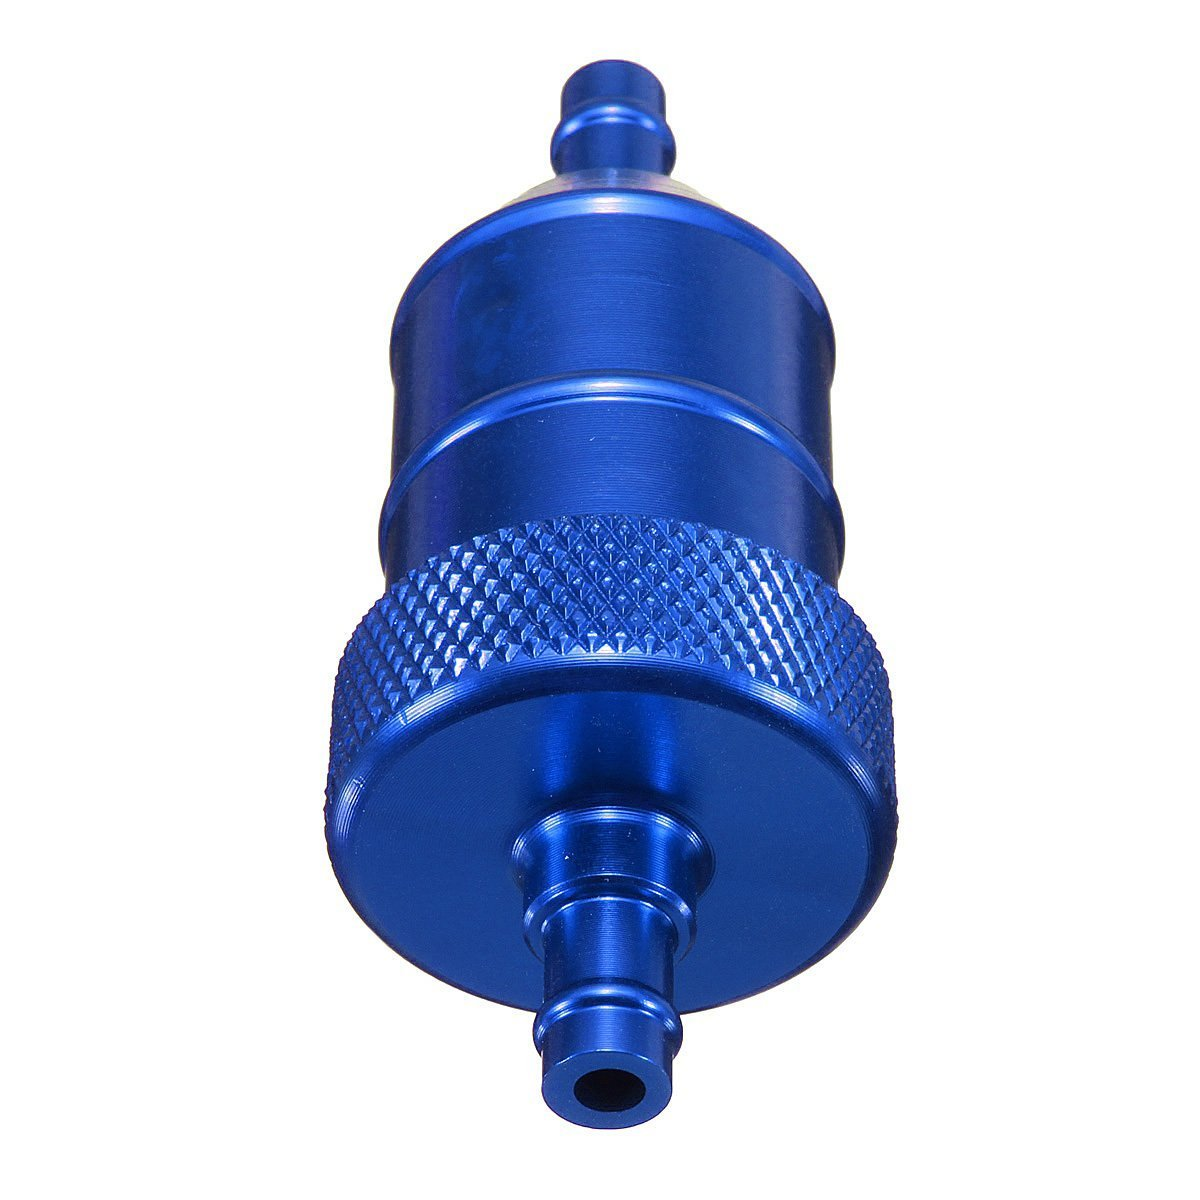 moto Fuel Filter - SODIAL(R) UNIVERSAL 6MM 1/4' MOTORCYCLE MOTORBIKE SCOOTER QUAD PIT BIKE CNC FUEL FILTER -Blue 060891A2